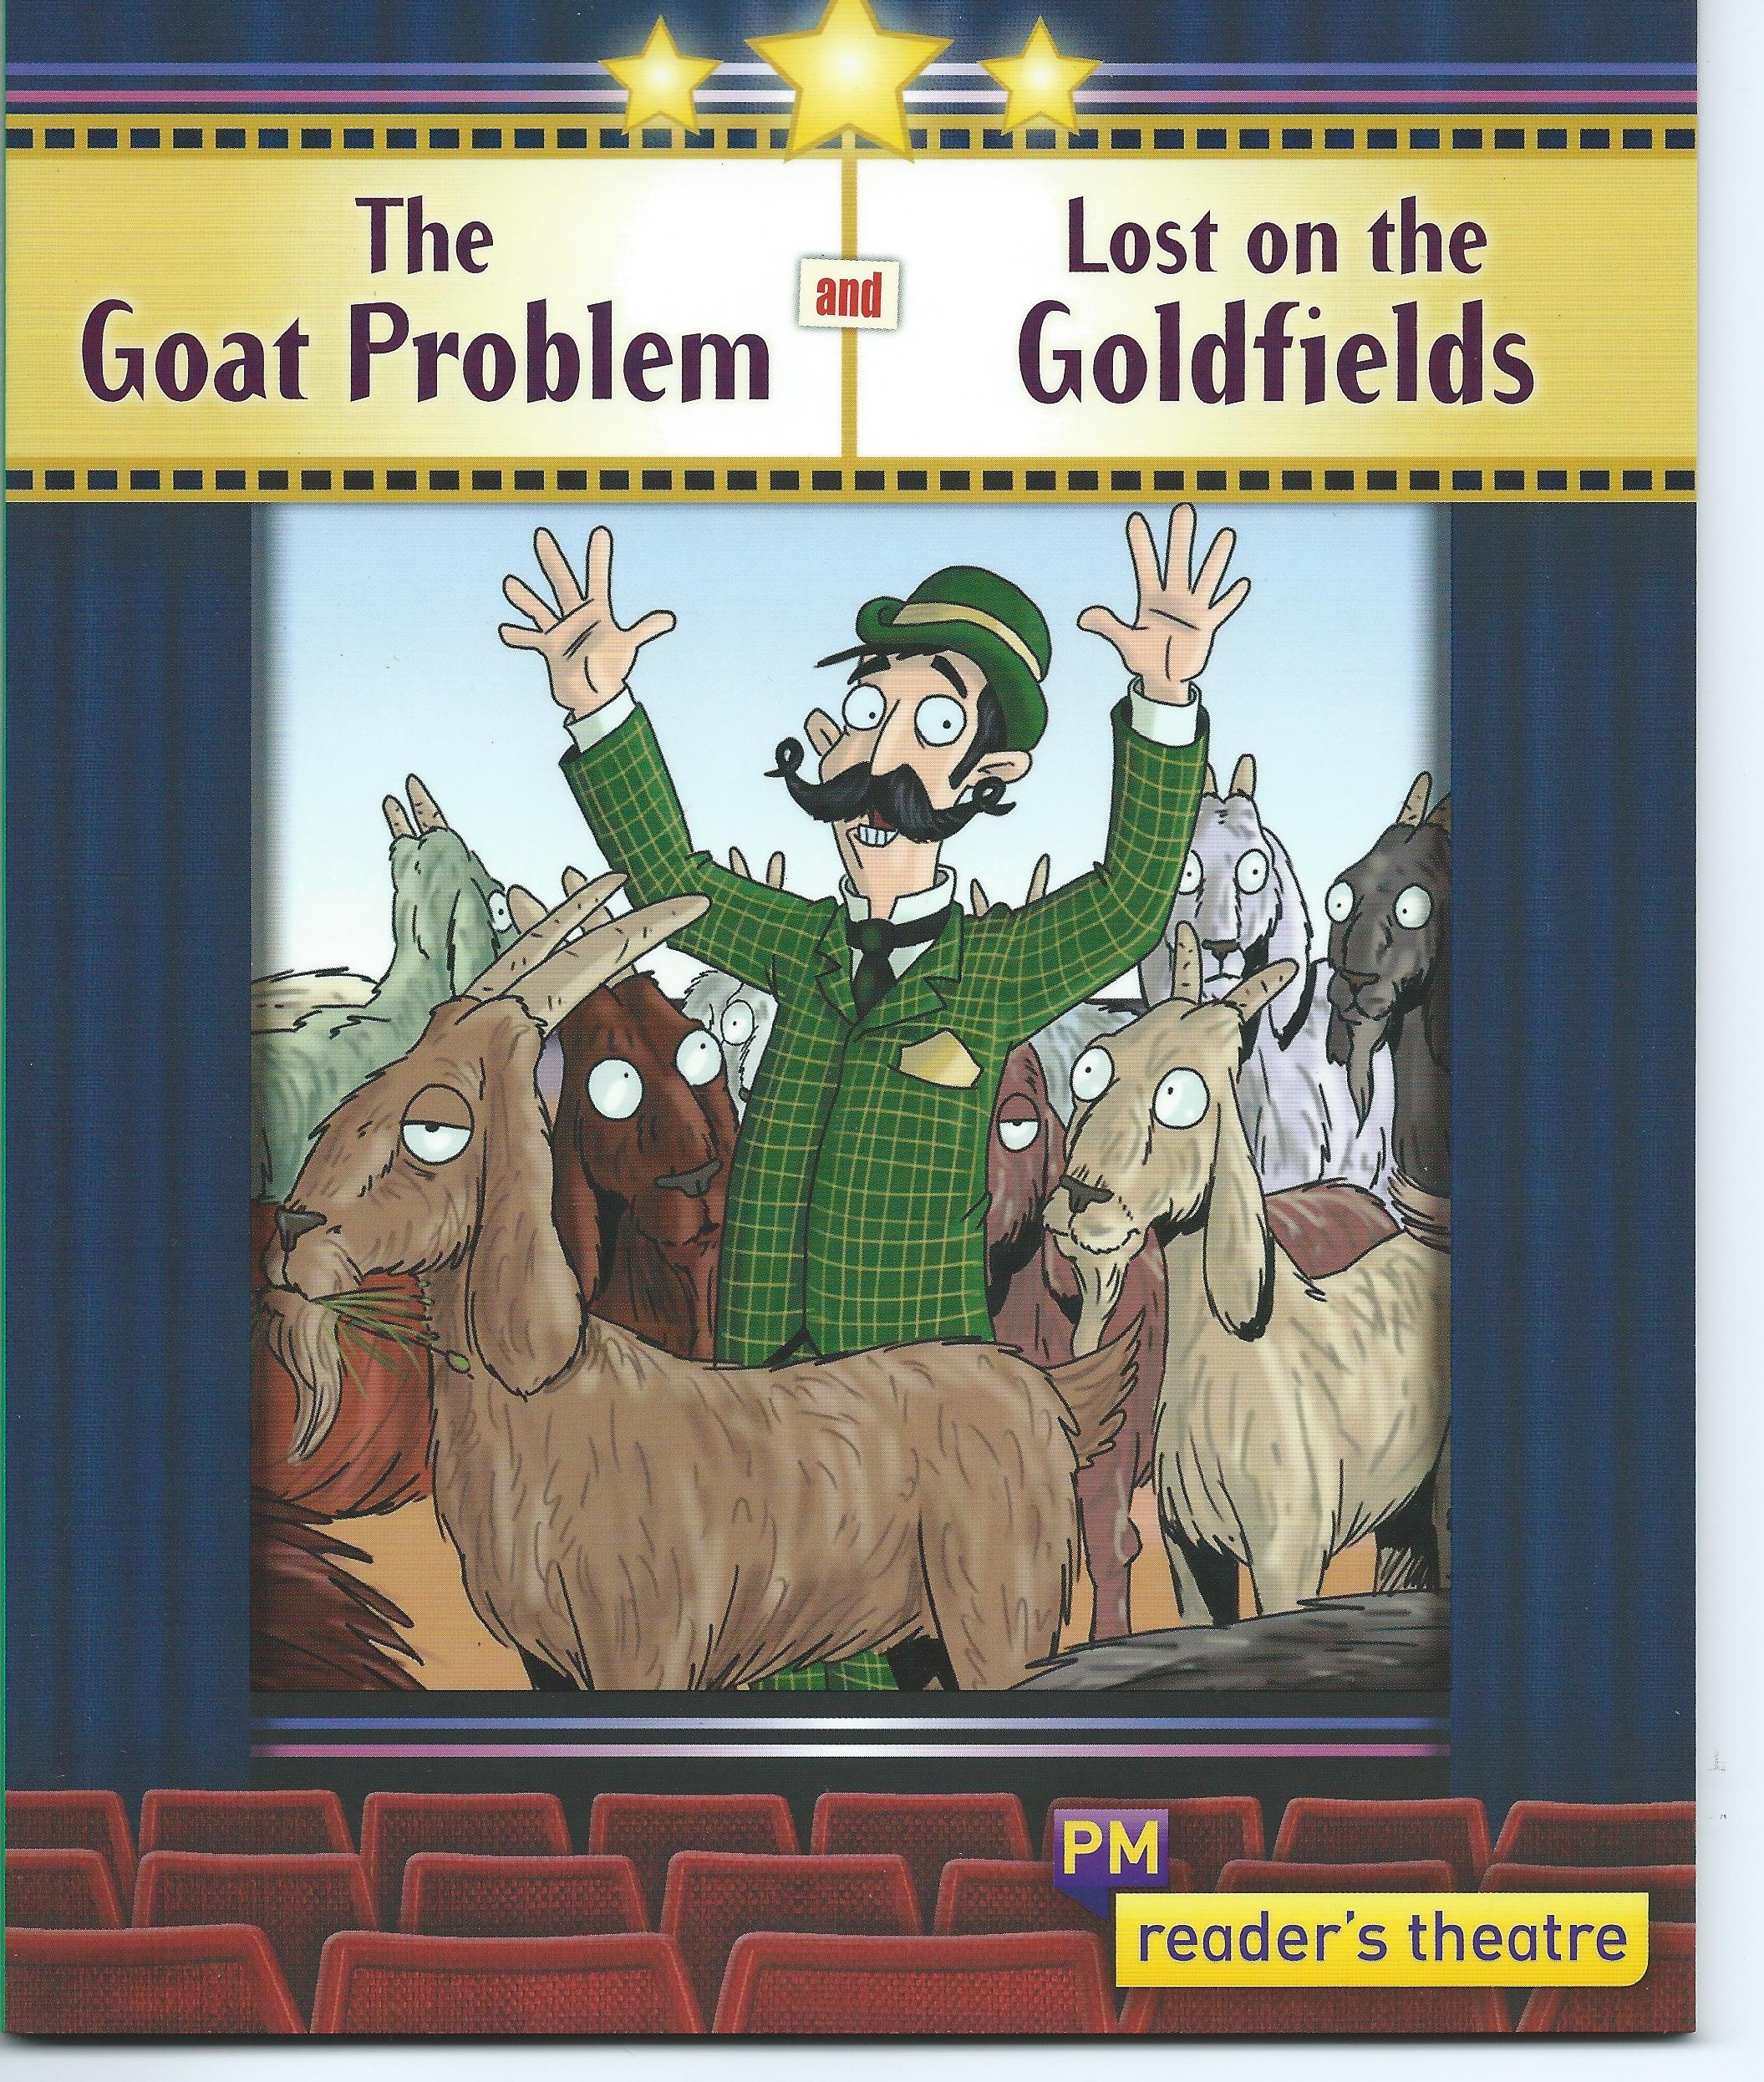 The Goat Problem and Lost on the Goldfields